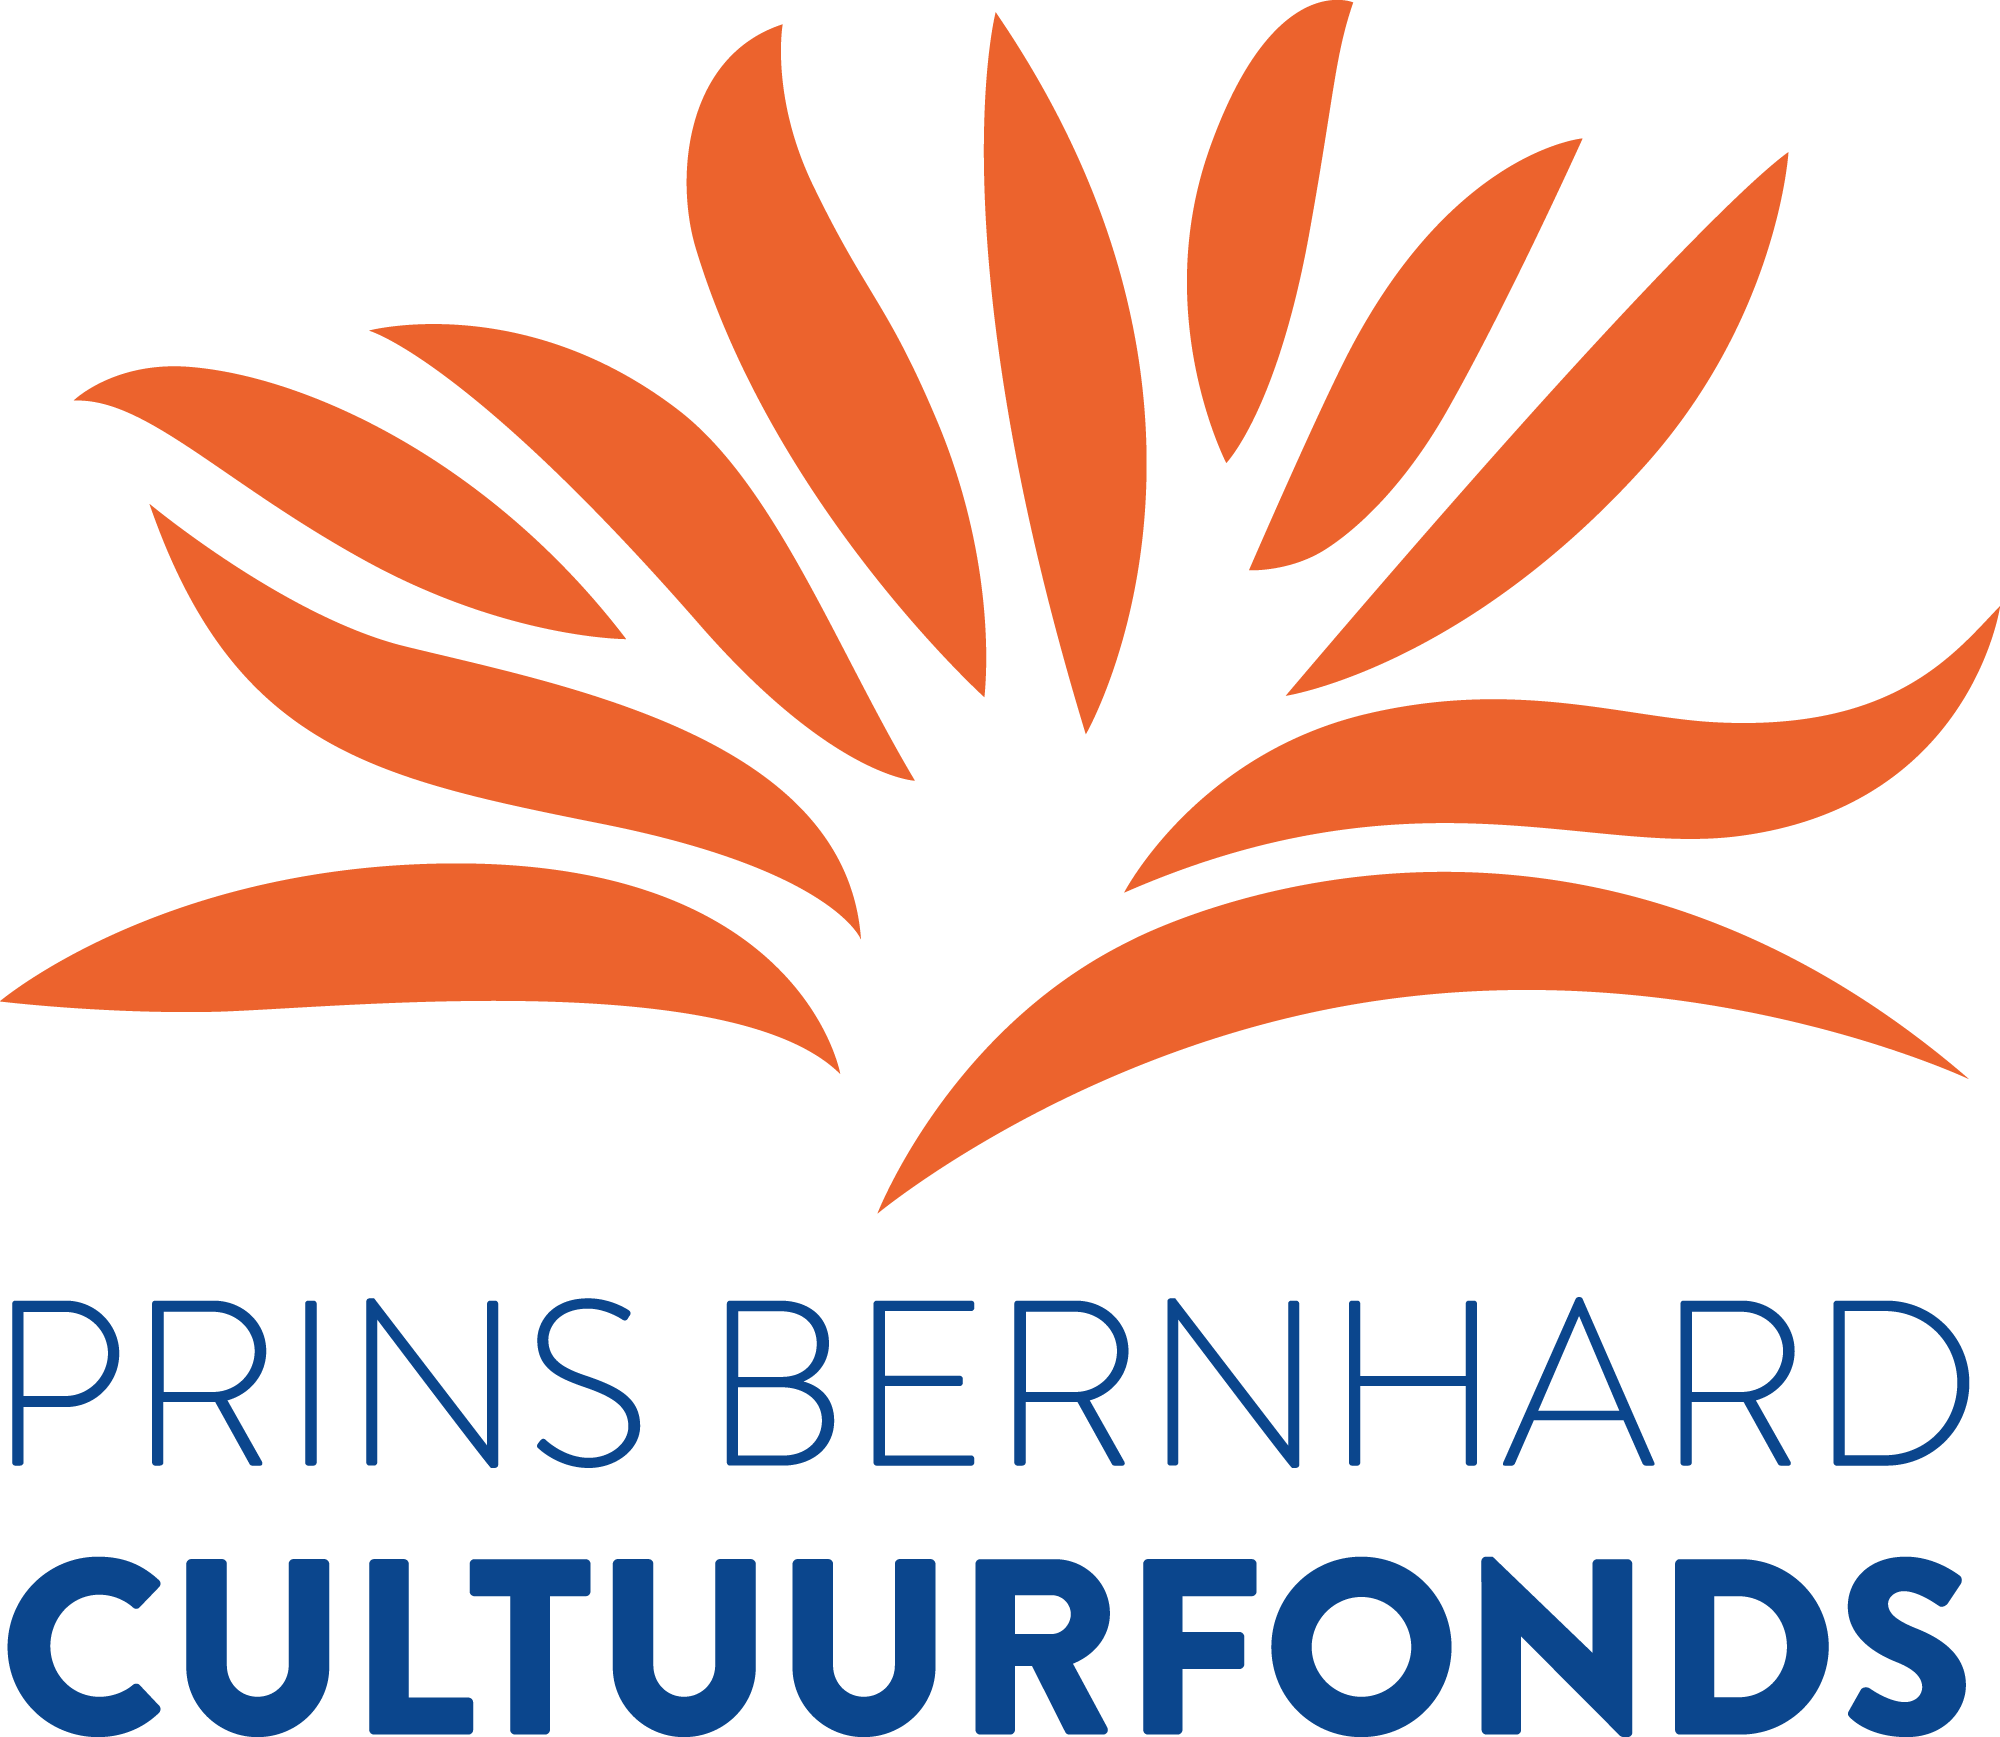 Prins Bernhard Cultuurfonds full color